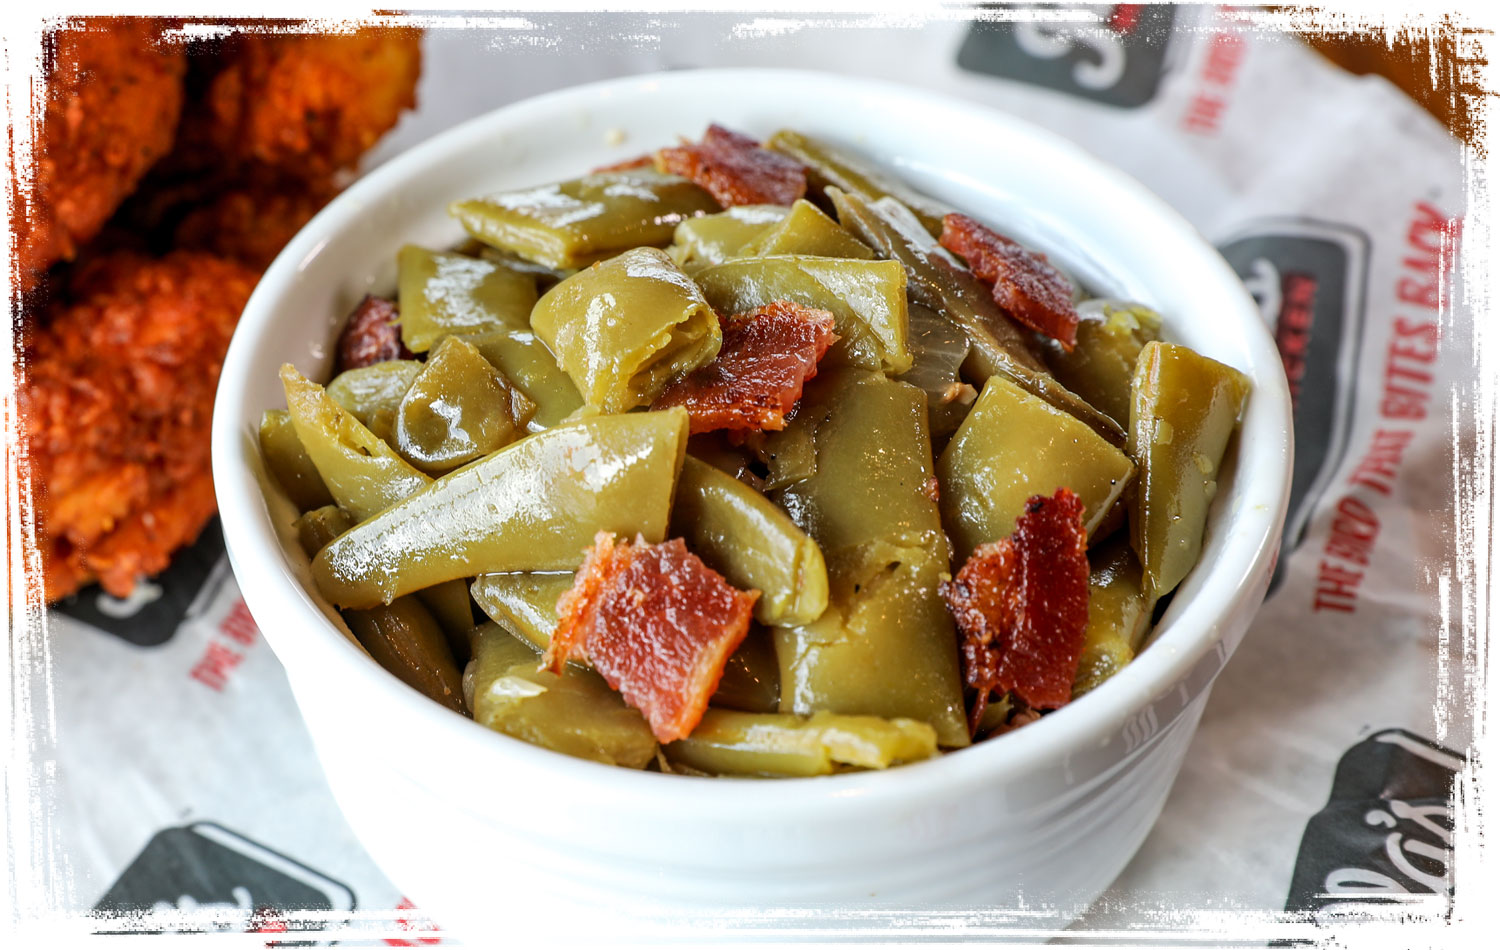 Joella's Green Beans with Bacon classic side